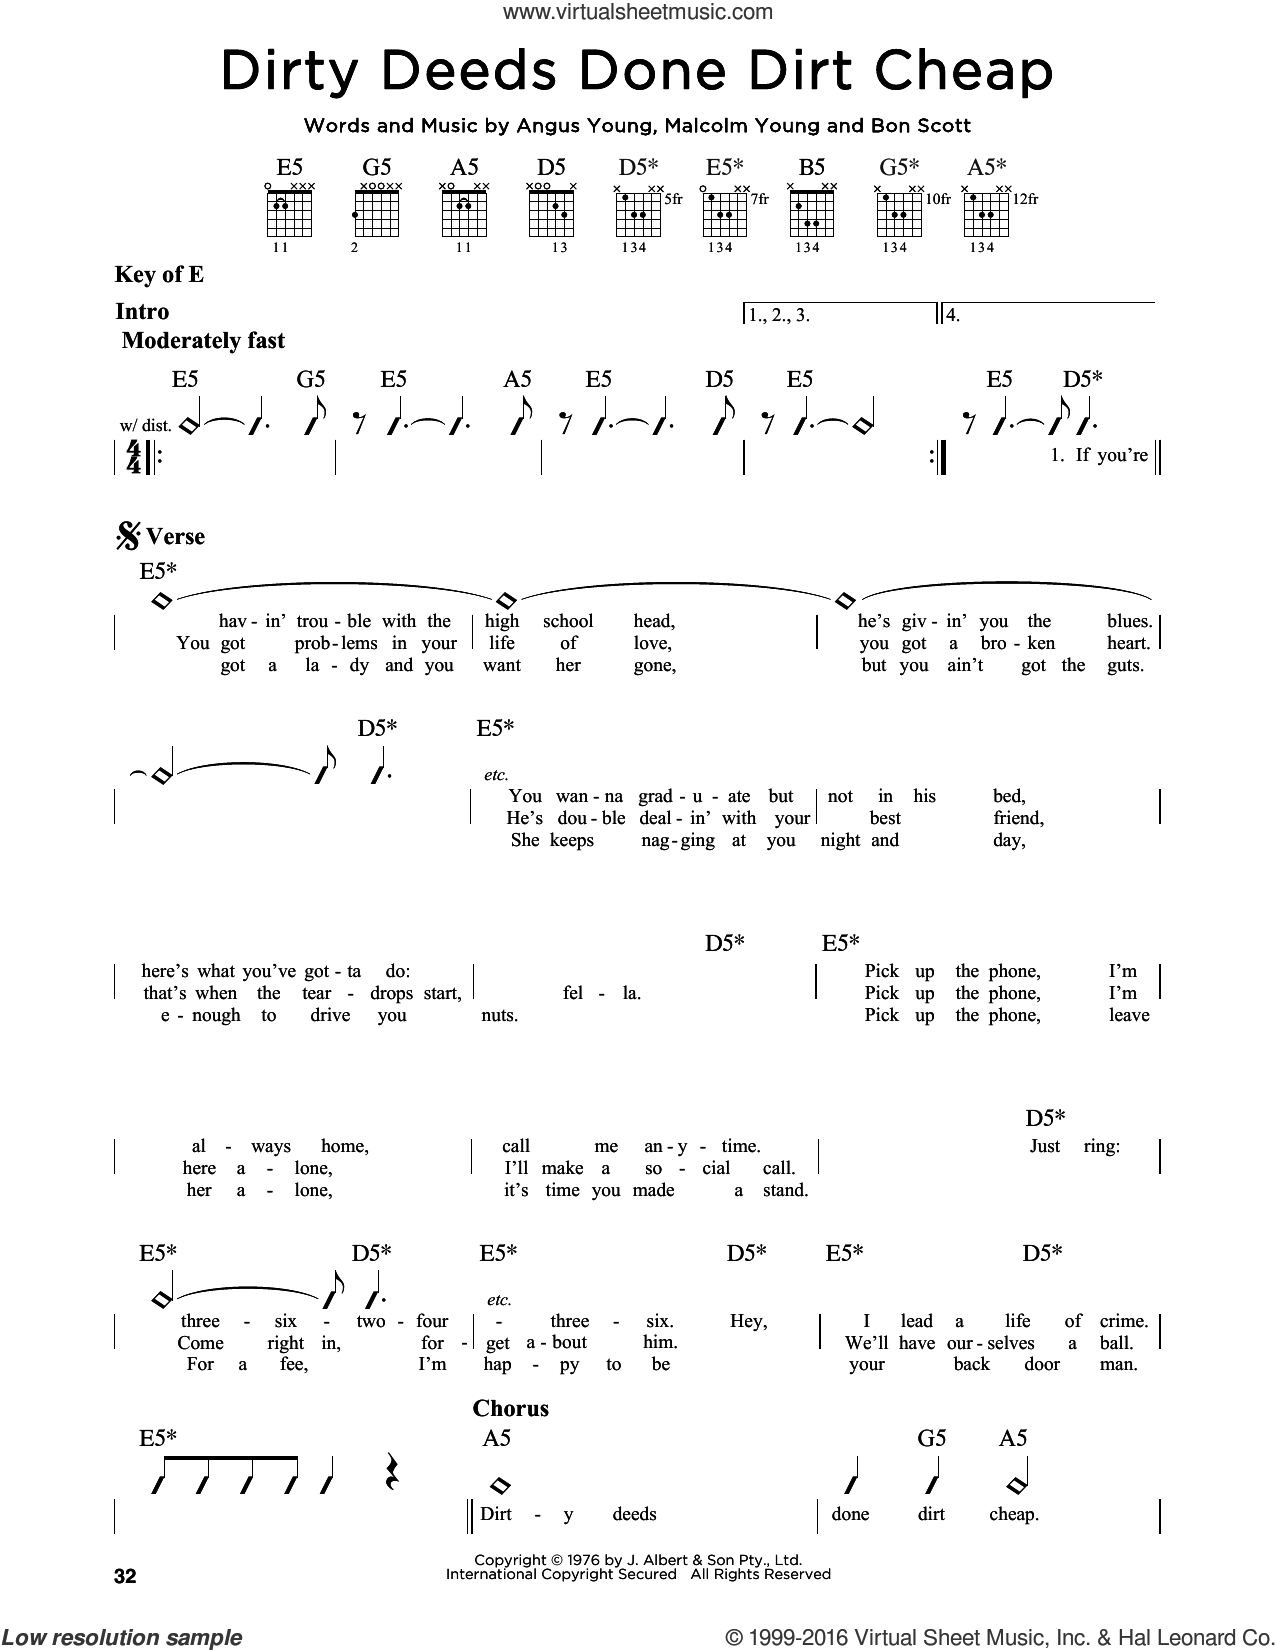 Dirty Deeds Done Dirt Cheap sheet music for guitar solo (lead sheet) by AC/DC. Score Image Preview.